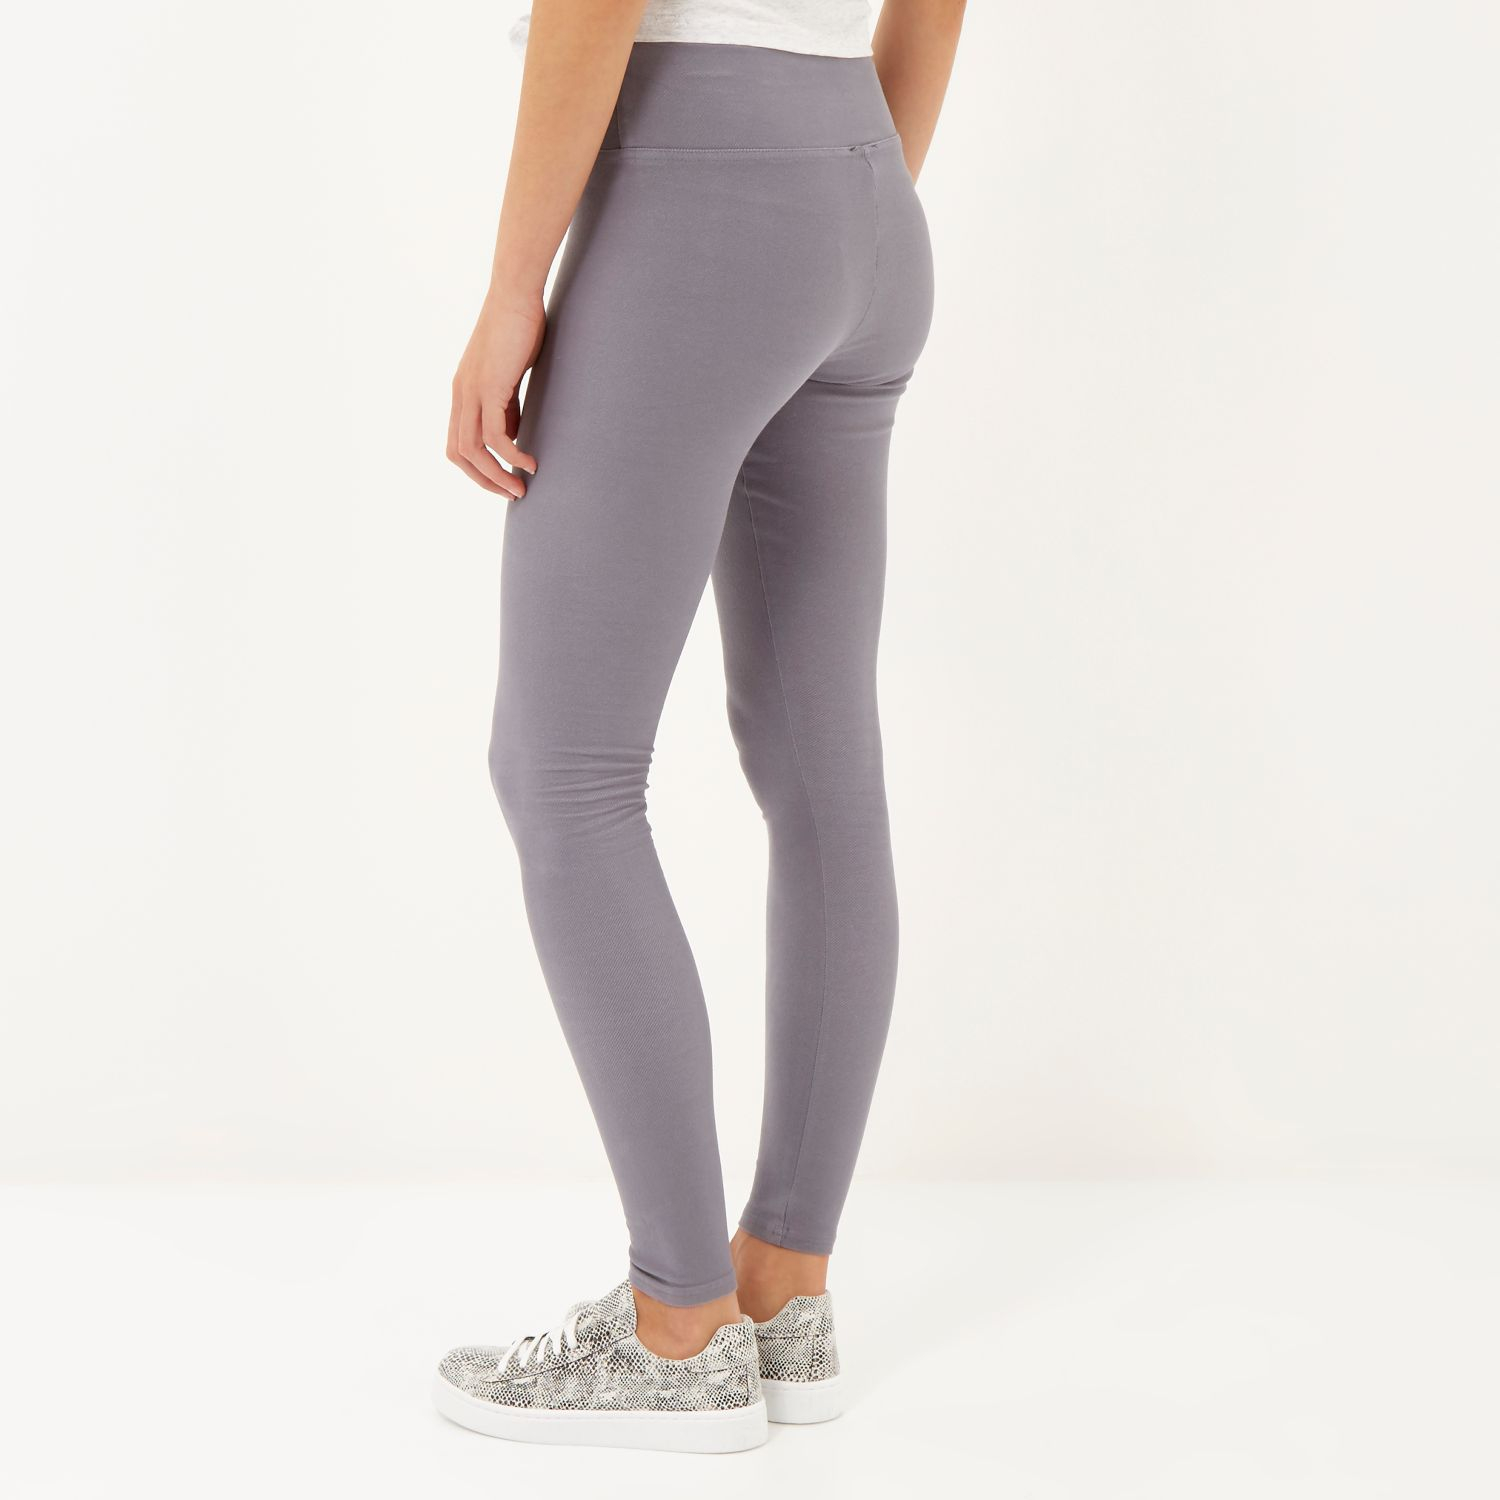 High Waisted Gray Leggings - Hardon Clothes